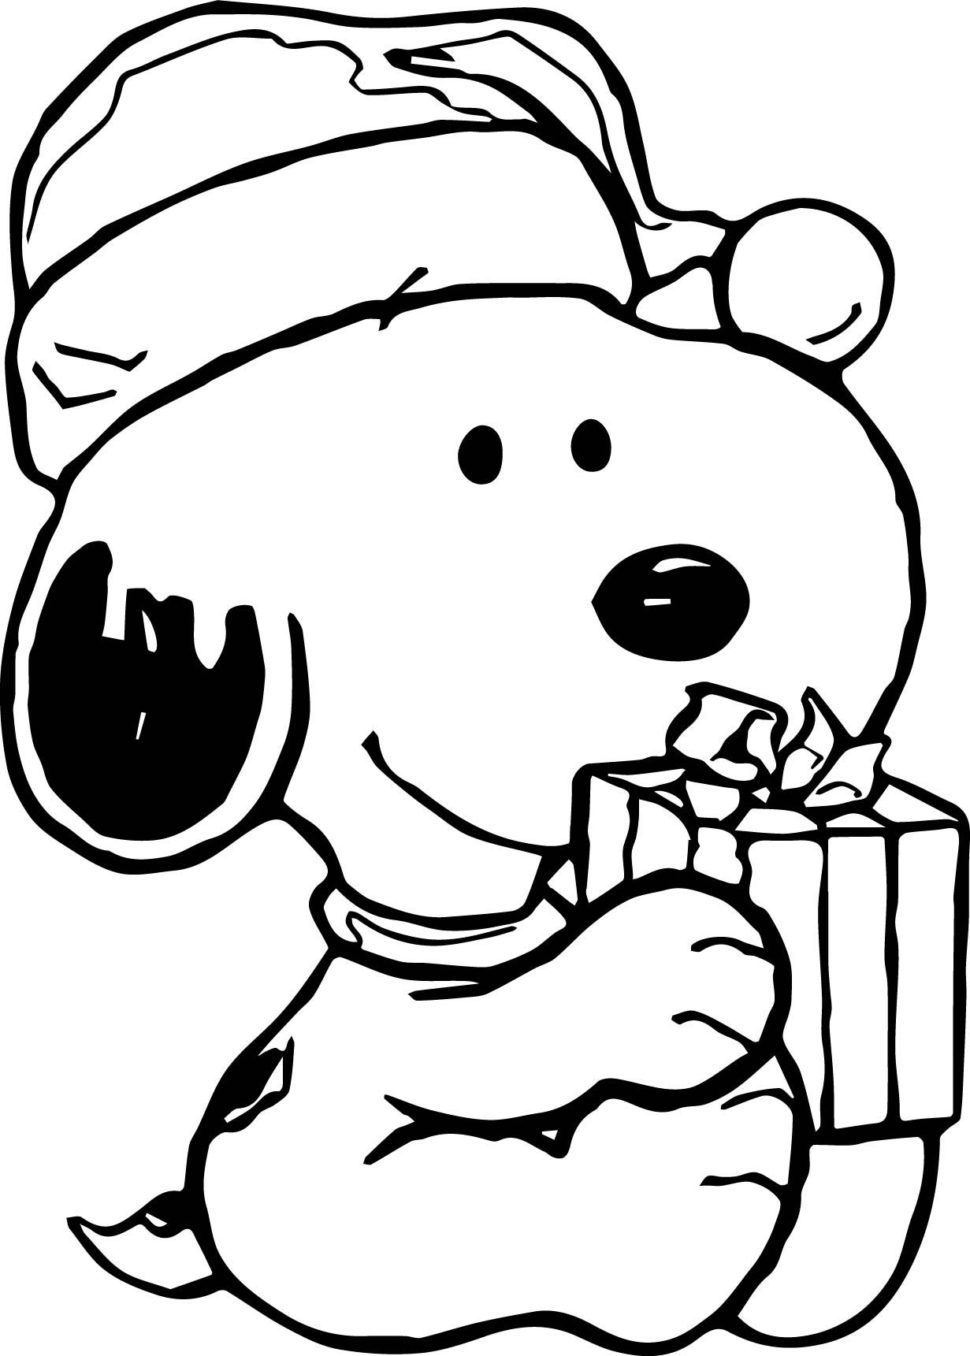 Coloring Pages Best Coloring Cool Baby Snoopy Christmas Snoopy Coloring Pages Christmas Coloring Books Cartoon Coloring Pages